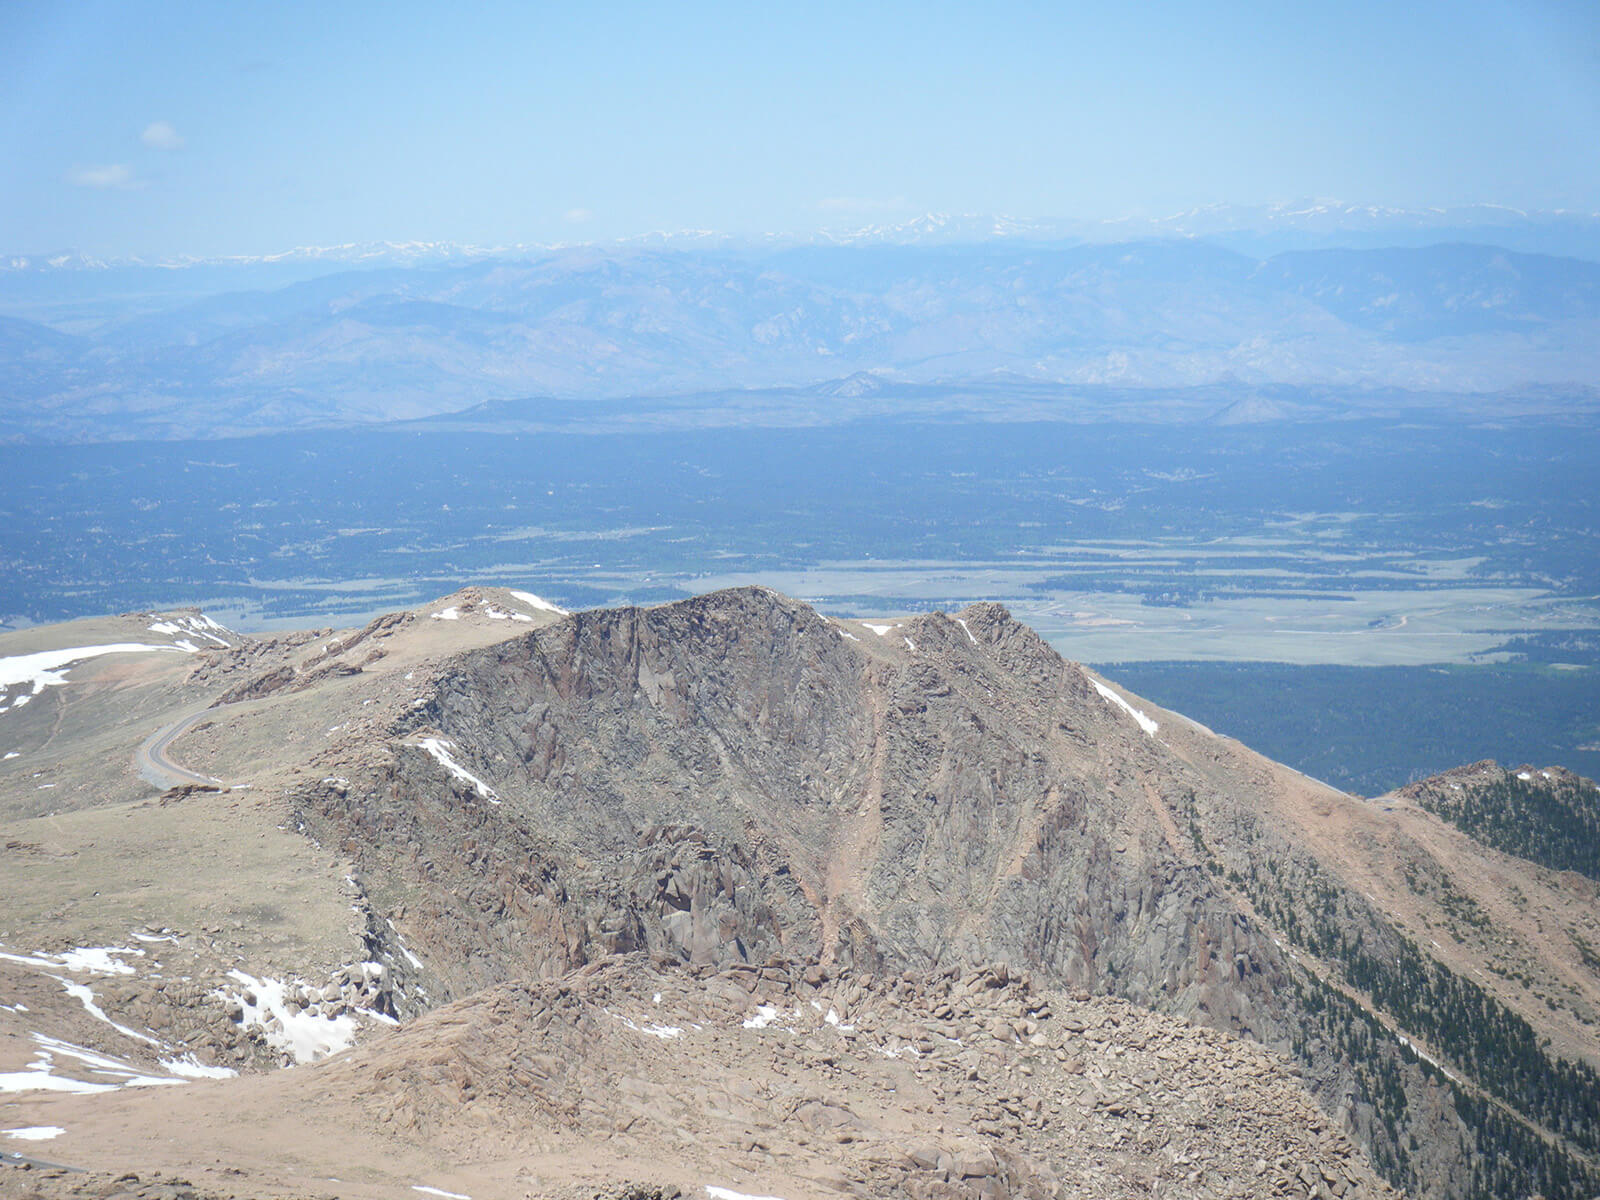 View from the summit of PPikes Peak in Colorado, over 14,000 feet above sea level